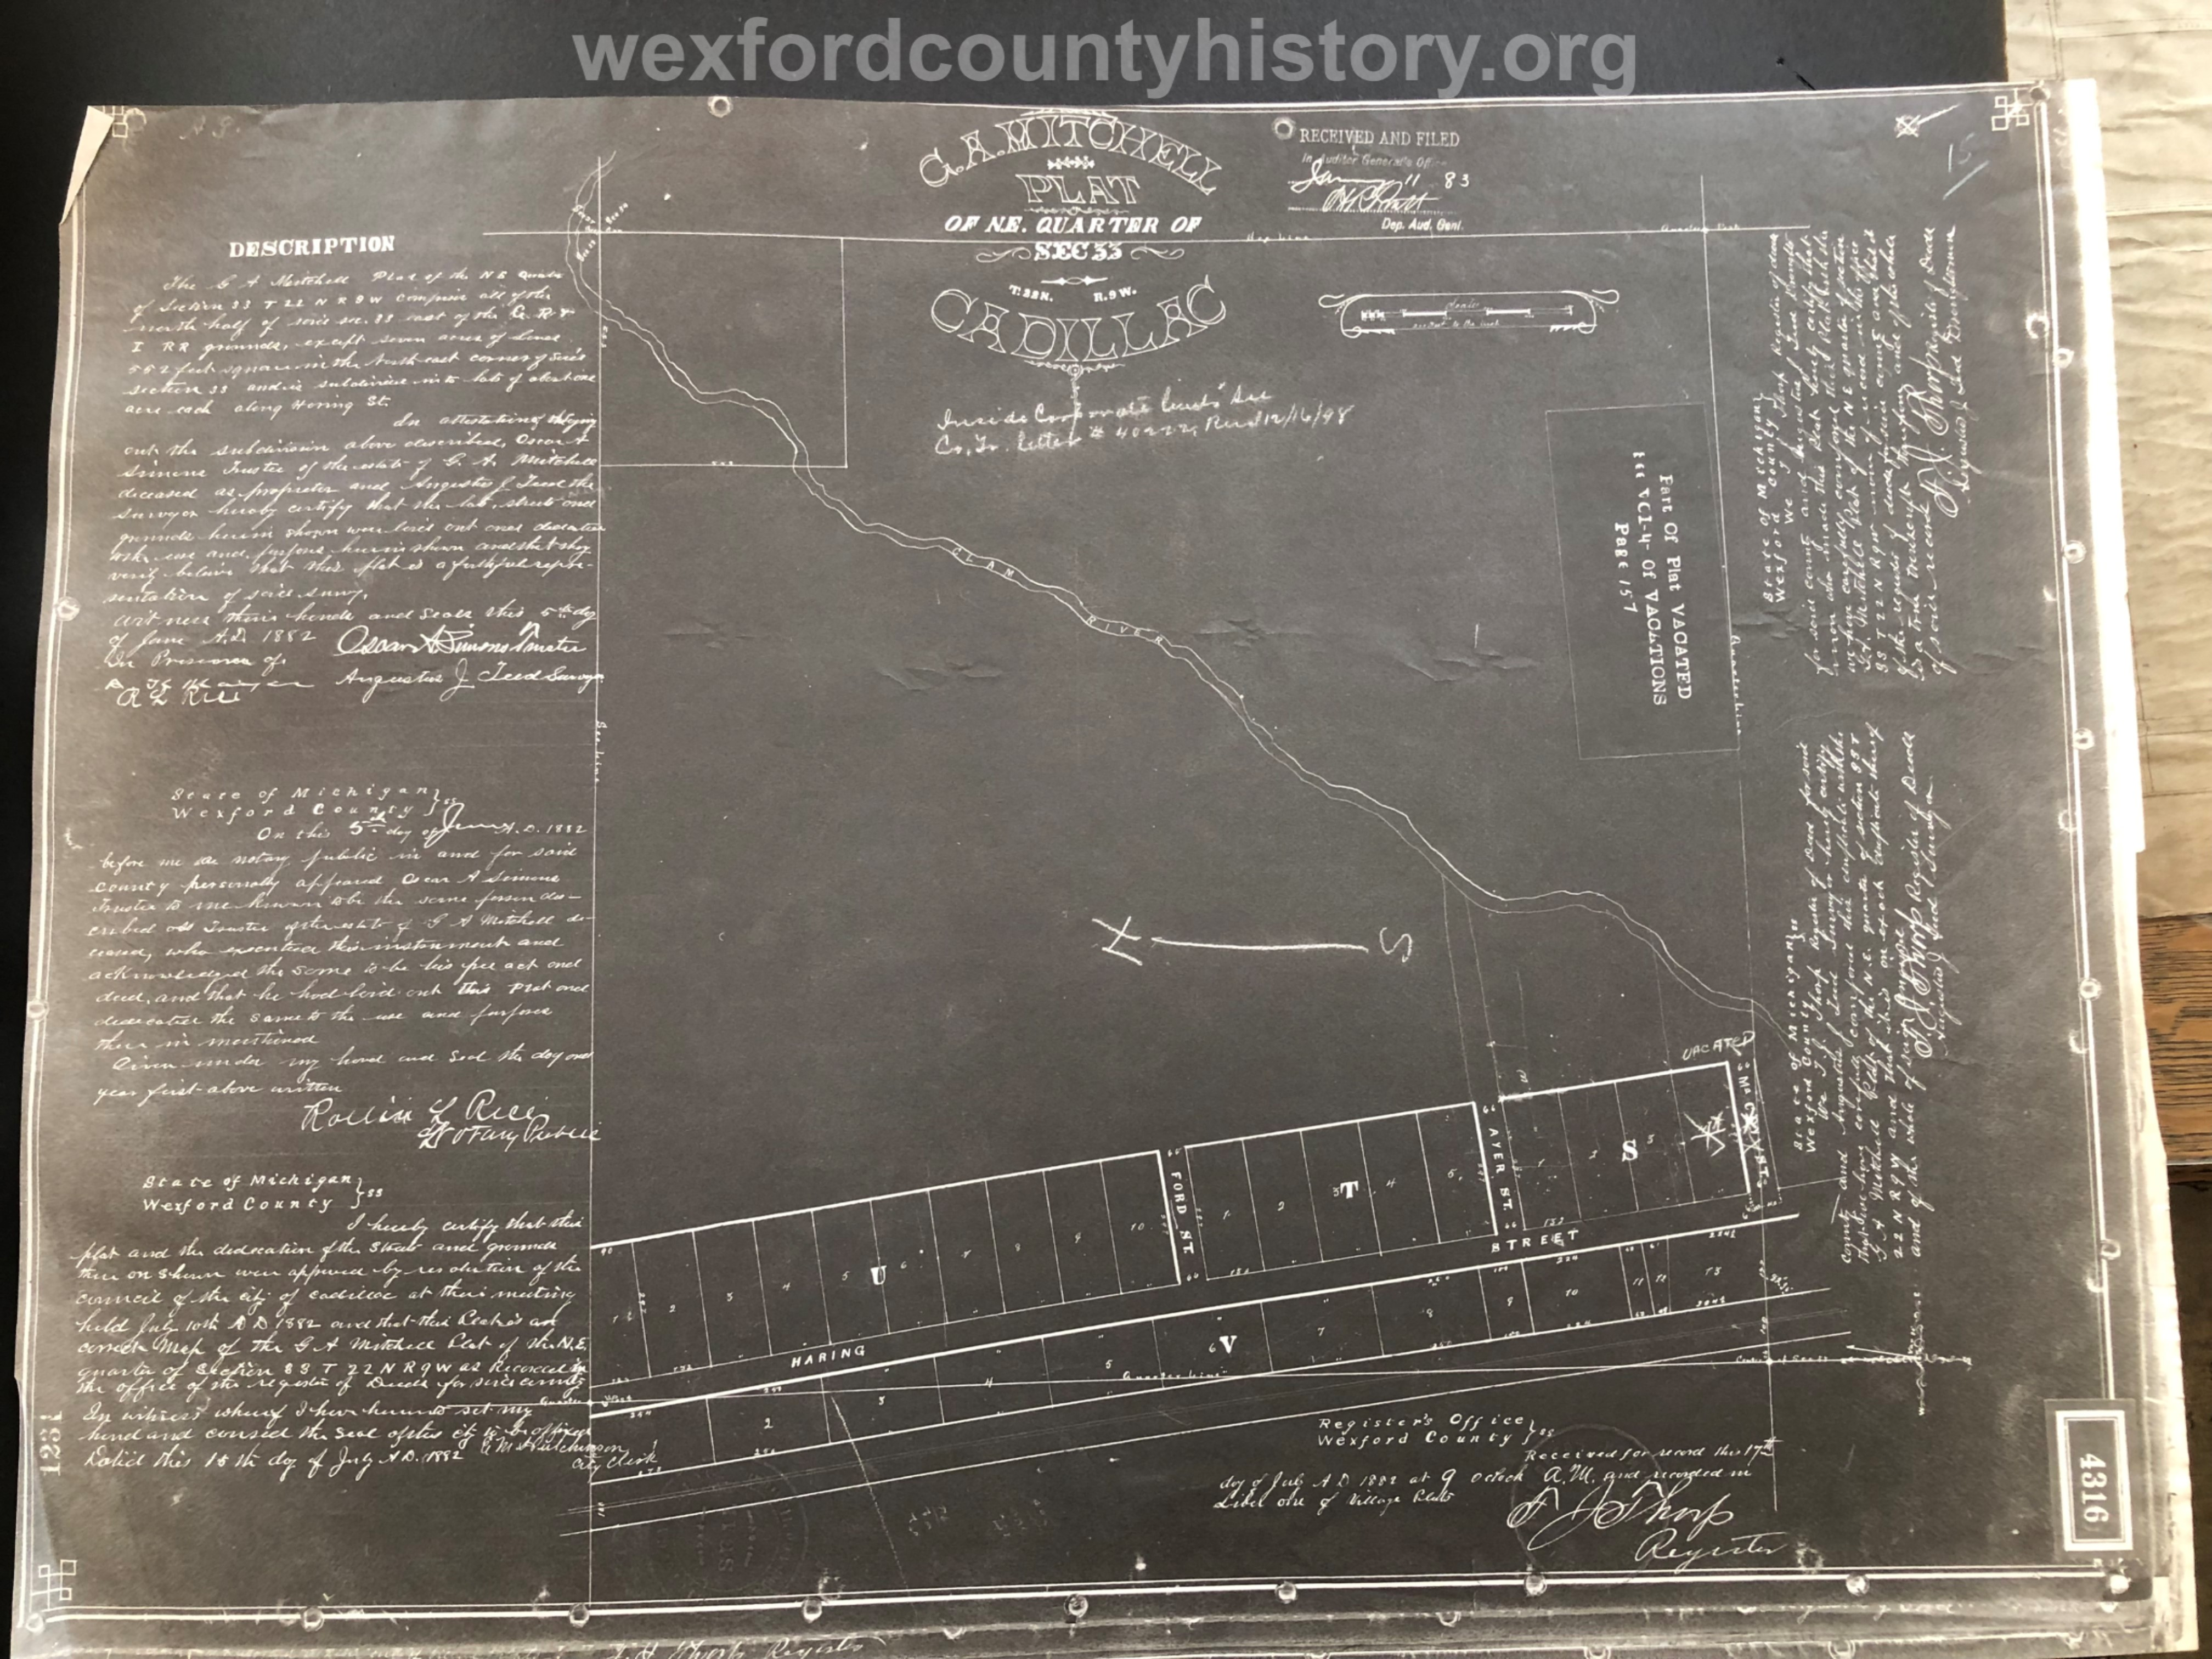 1883 - George A. Mitchell's Plat Of The Northeast Quarter Of Section 33